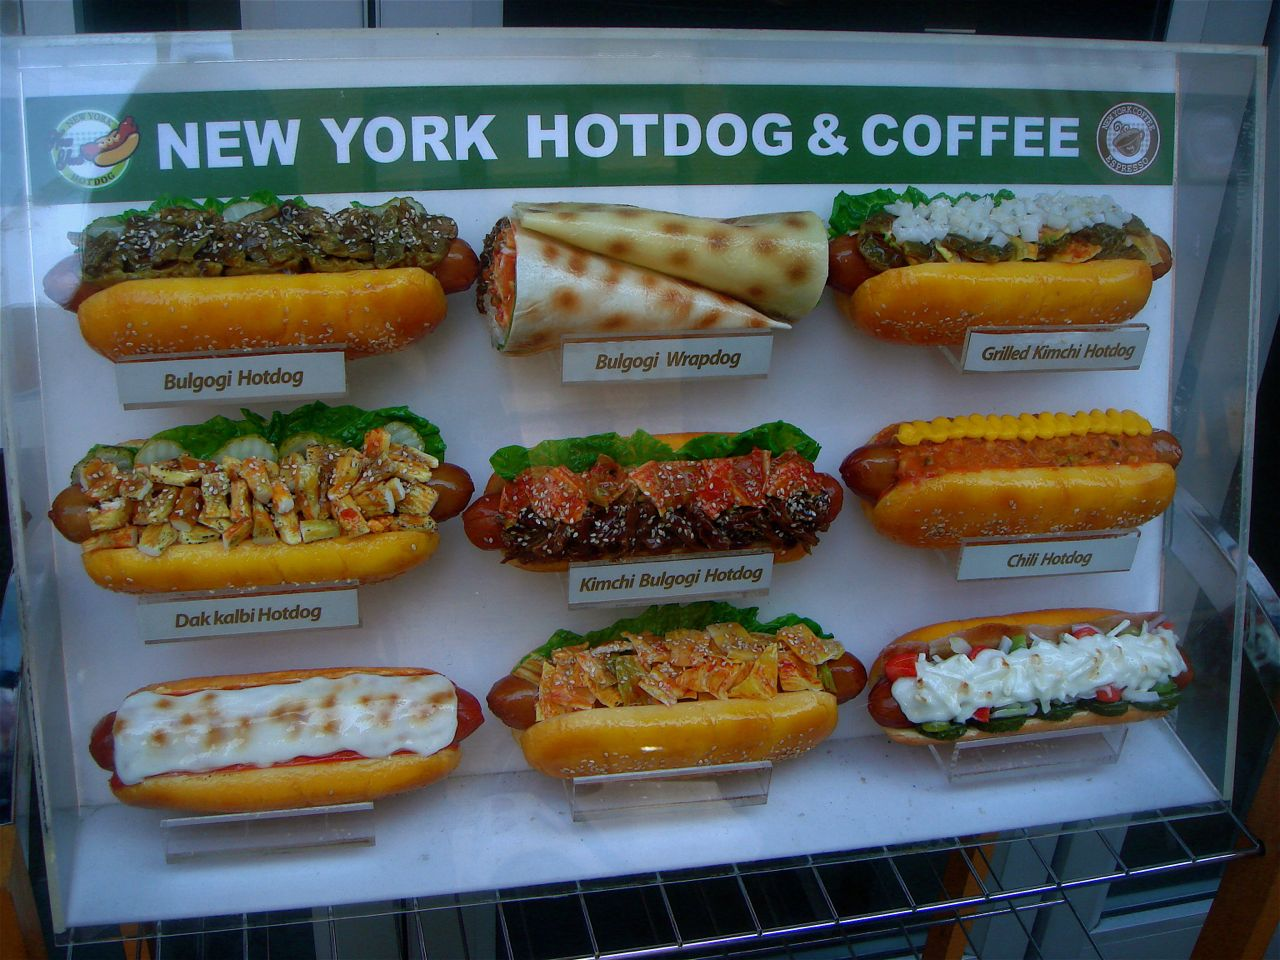 Chicago Hot Dog In Nyc